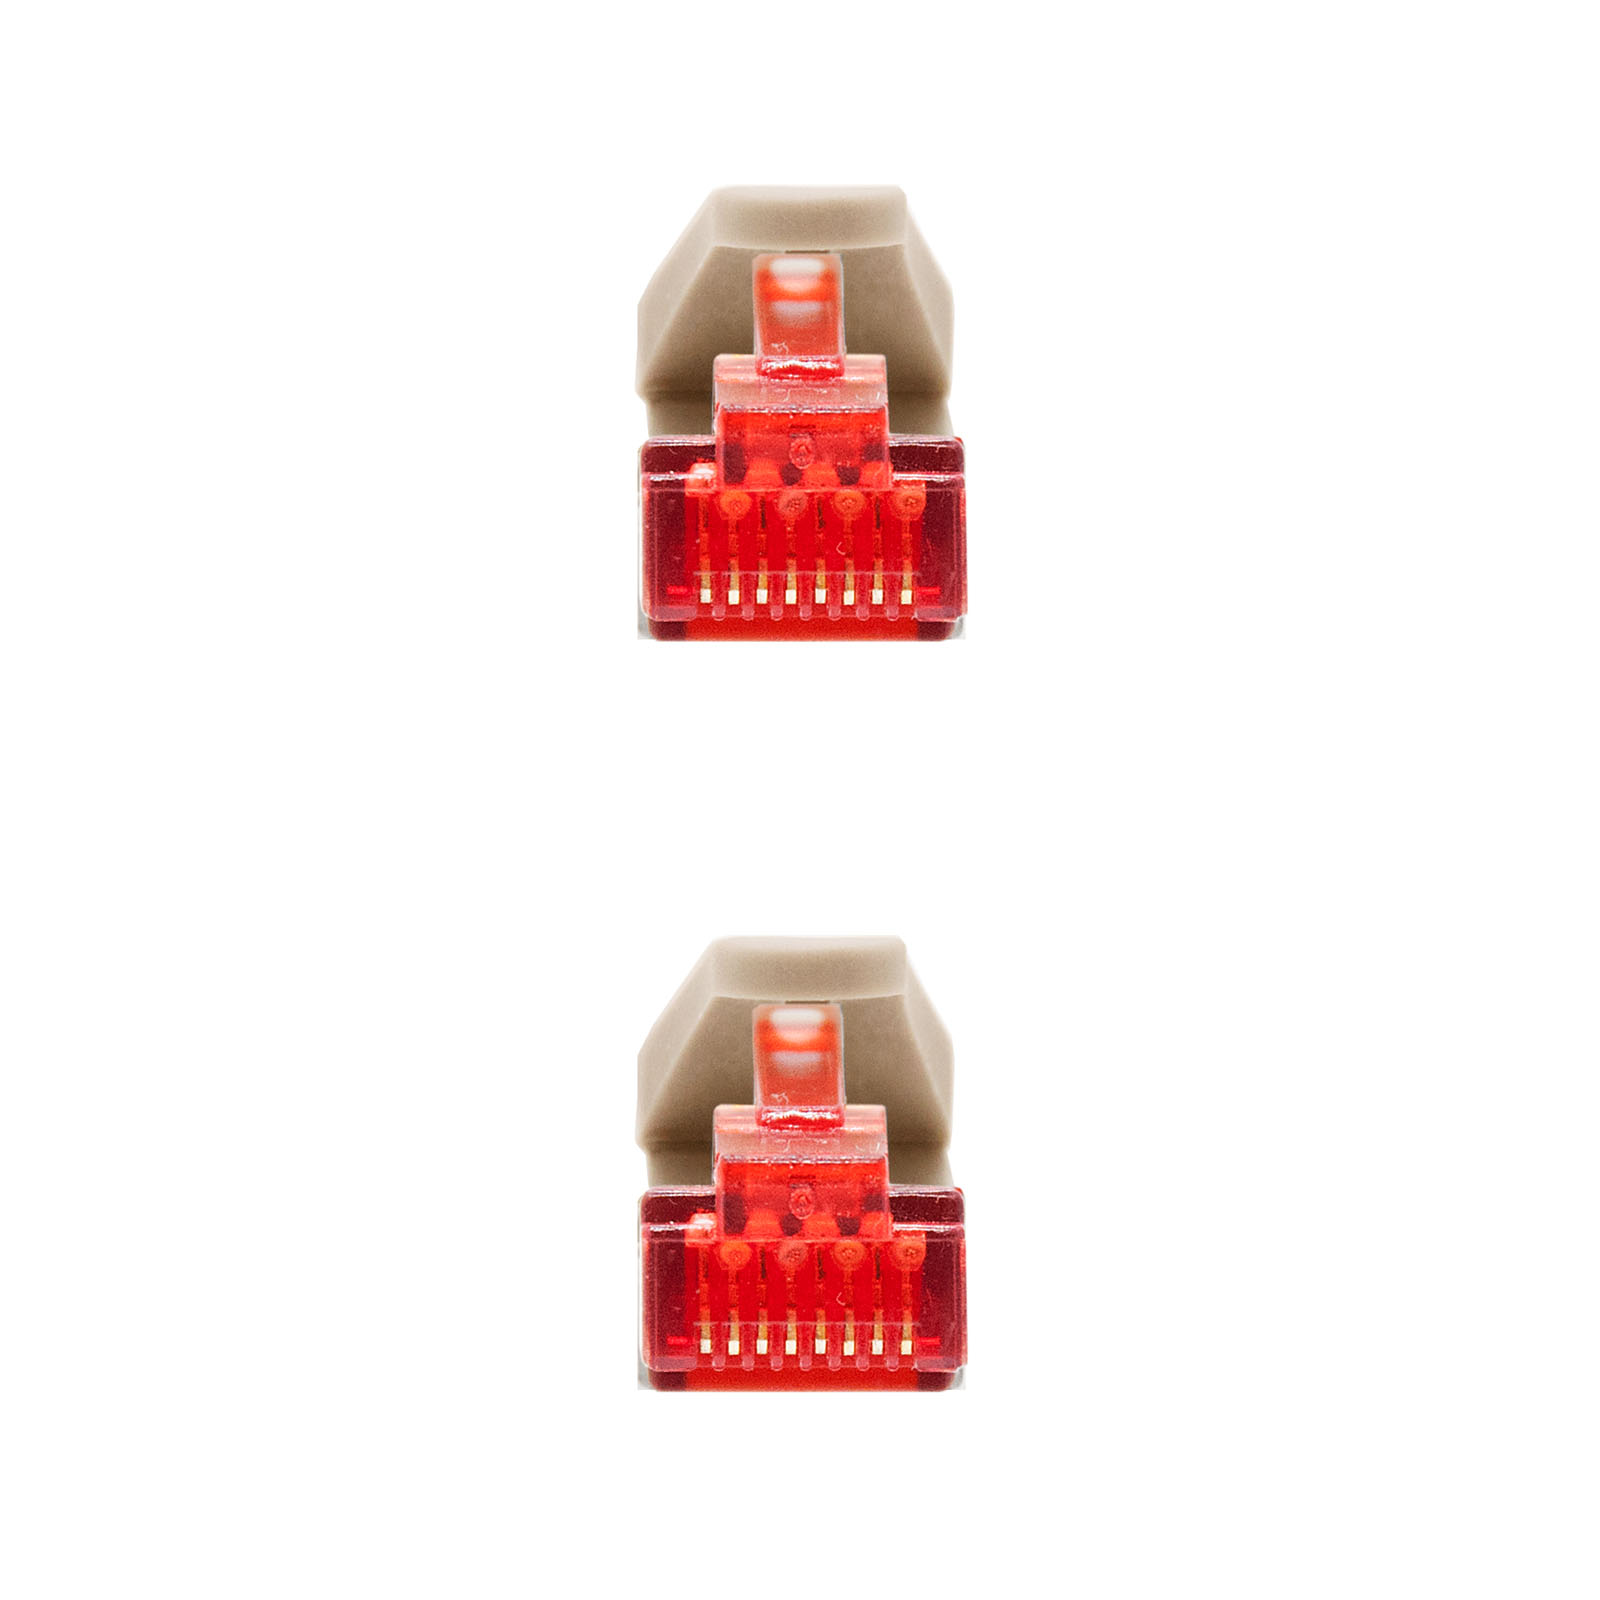 CABLE RED LATIGUILLO RJ45 CAT.6 SSTP PIMF FLEXIBLE AWG26 2.0 M